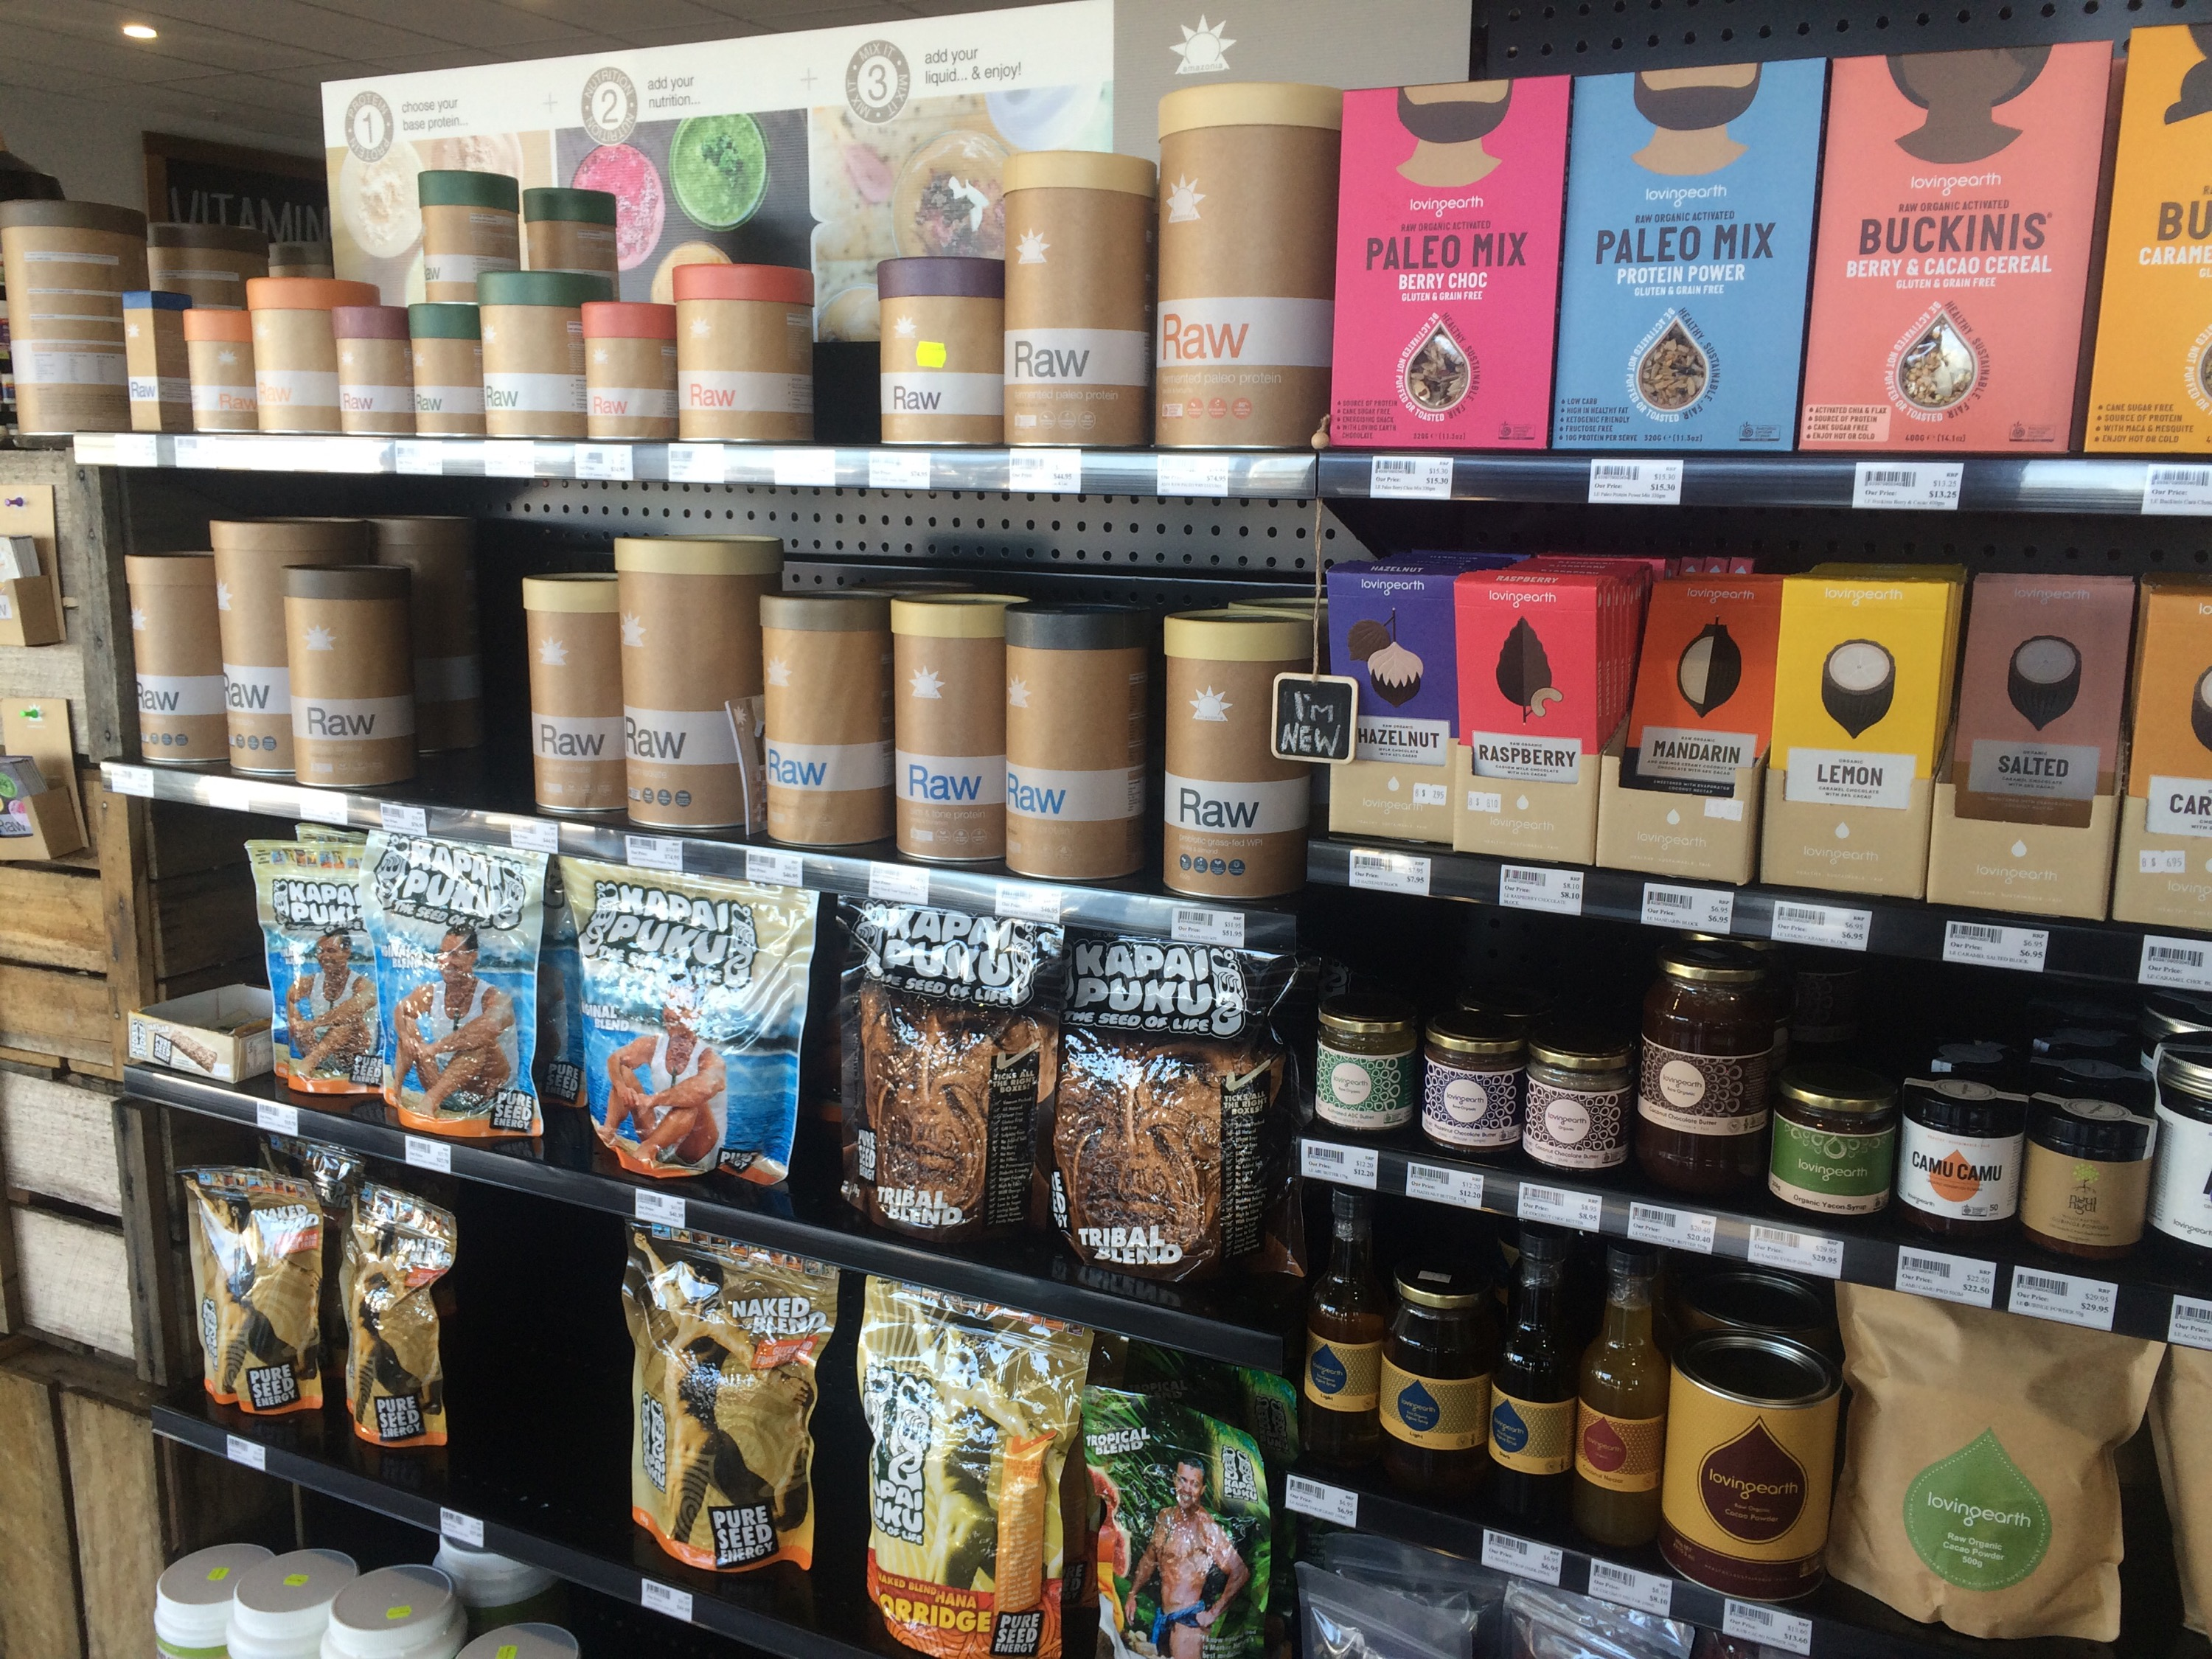 Some organic products and health foods at the Go Vita Store.